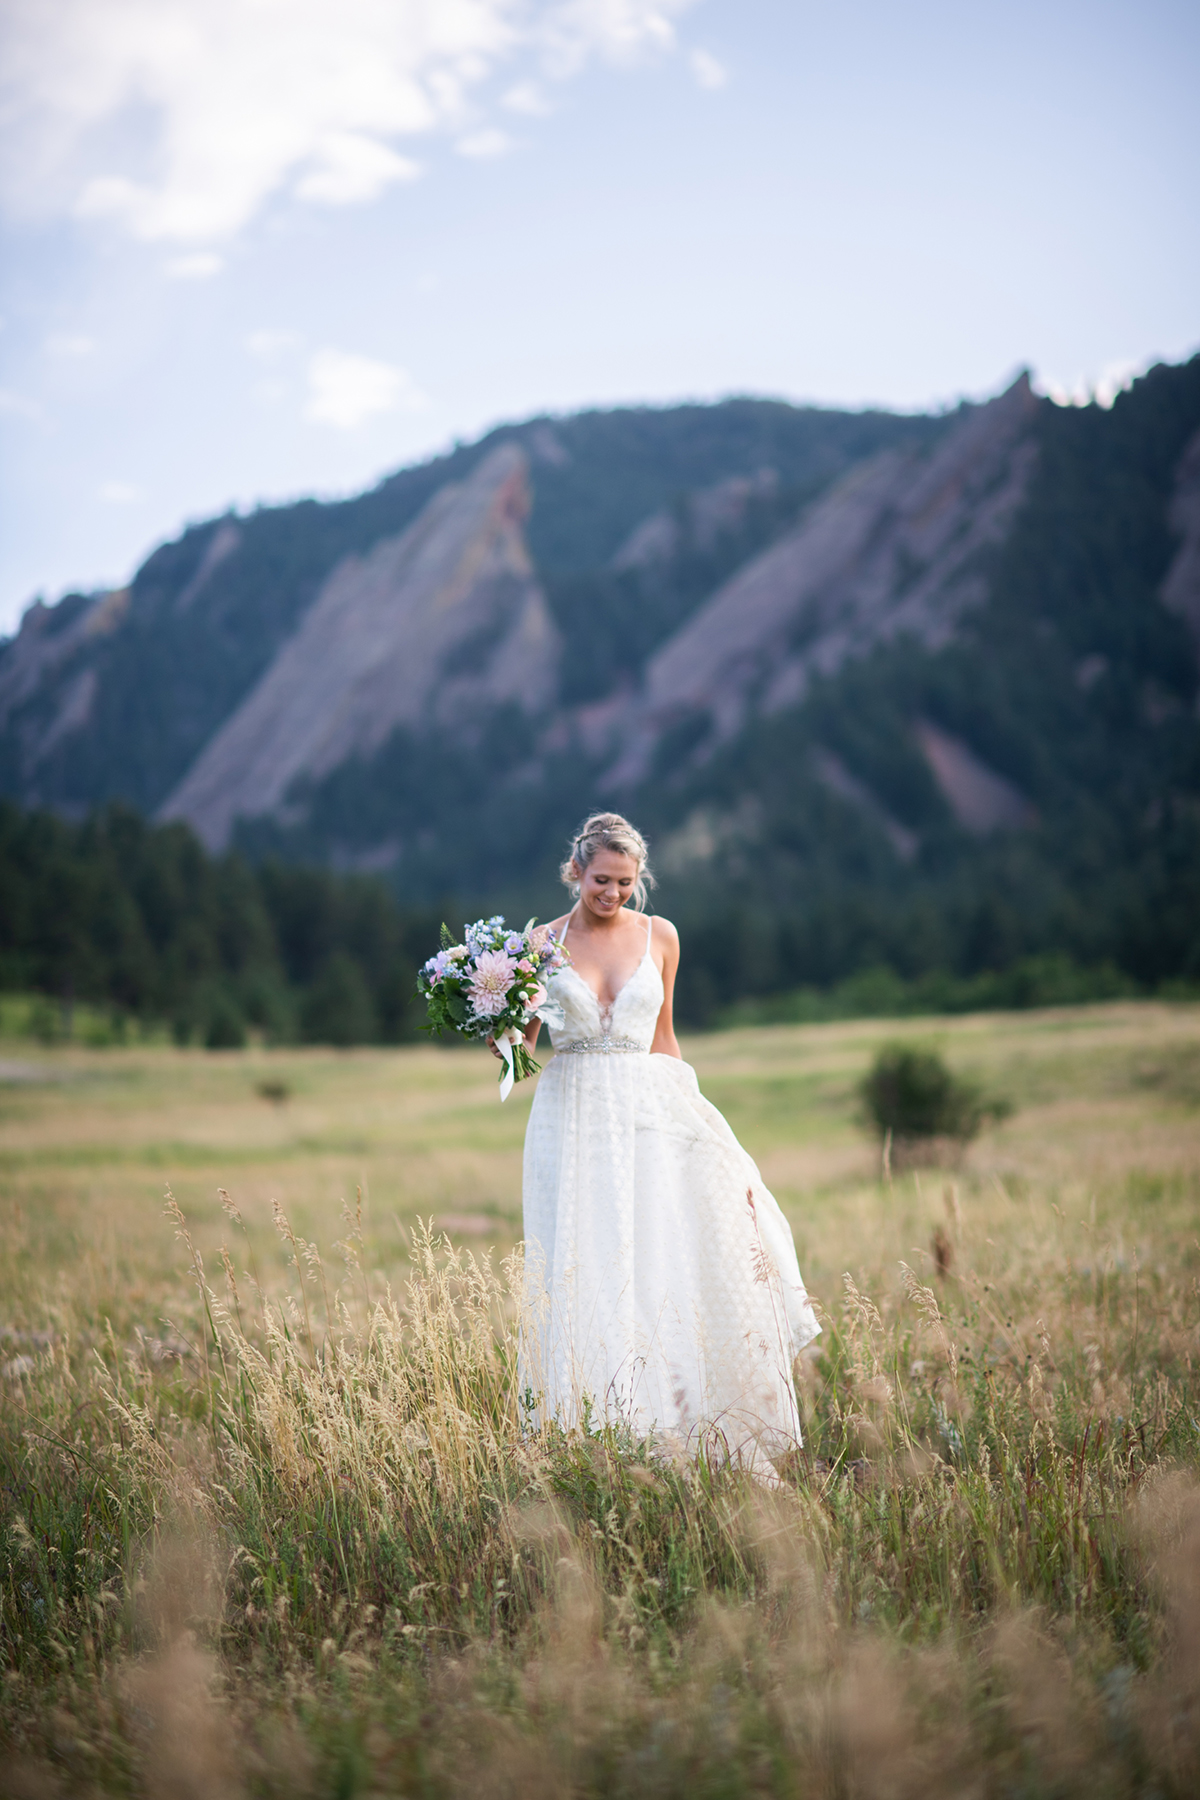 In case you've ever wondered what is our fastest turn around, this one wins. Less than 24 hours! We did Katies bridal portraits and had an expedited rush turn around on her images so that one could be printed in time for the wedding.